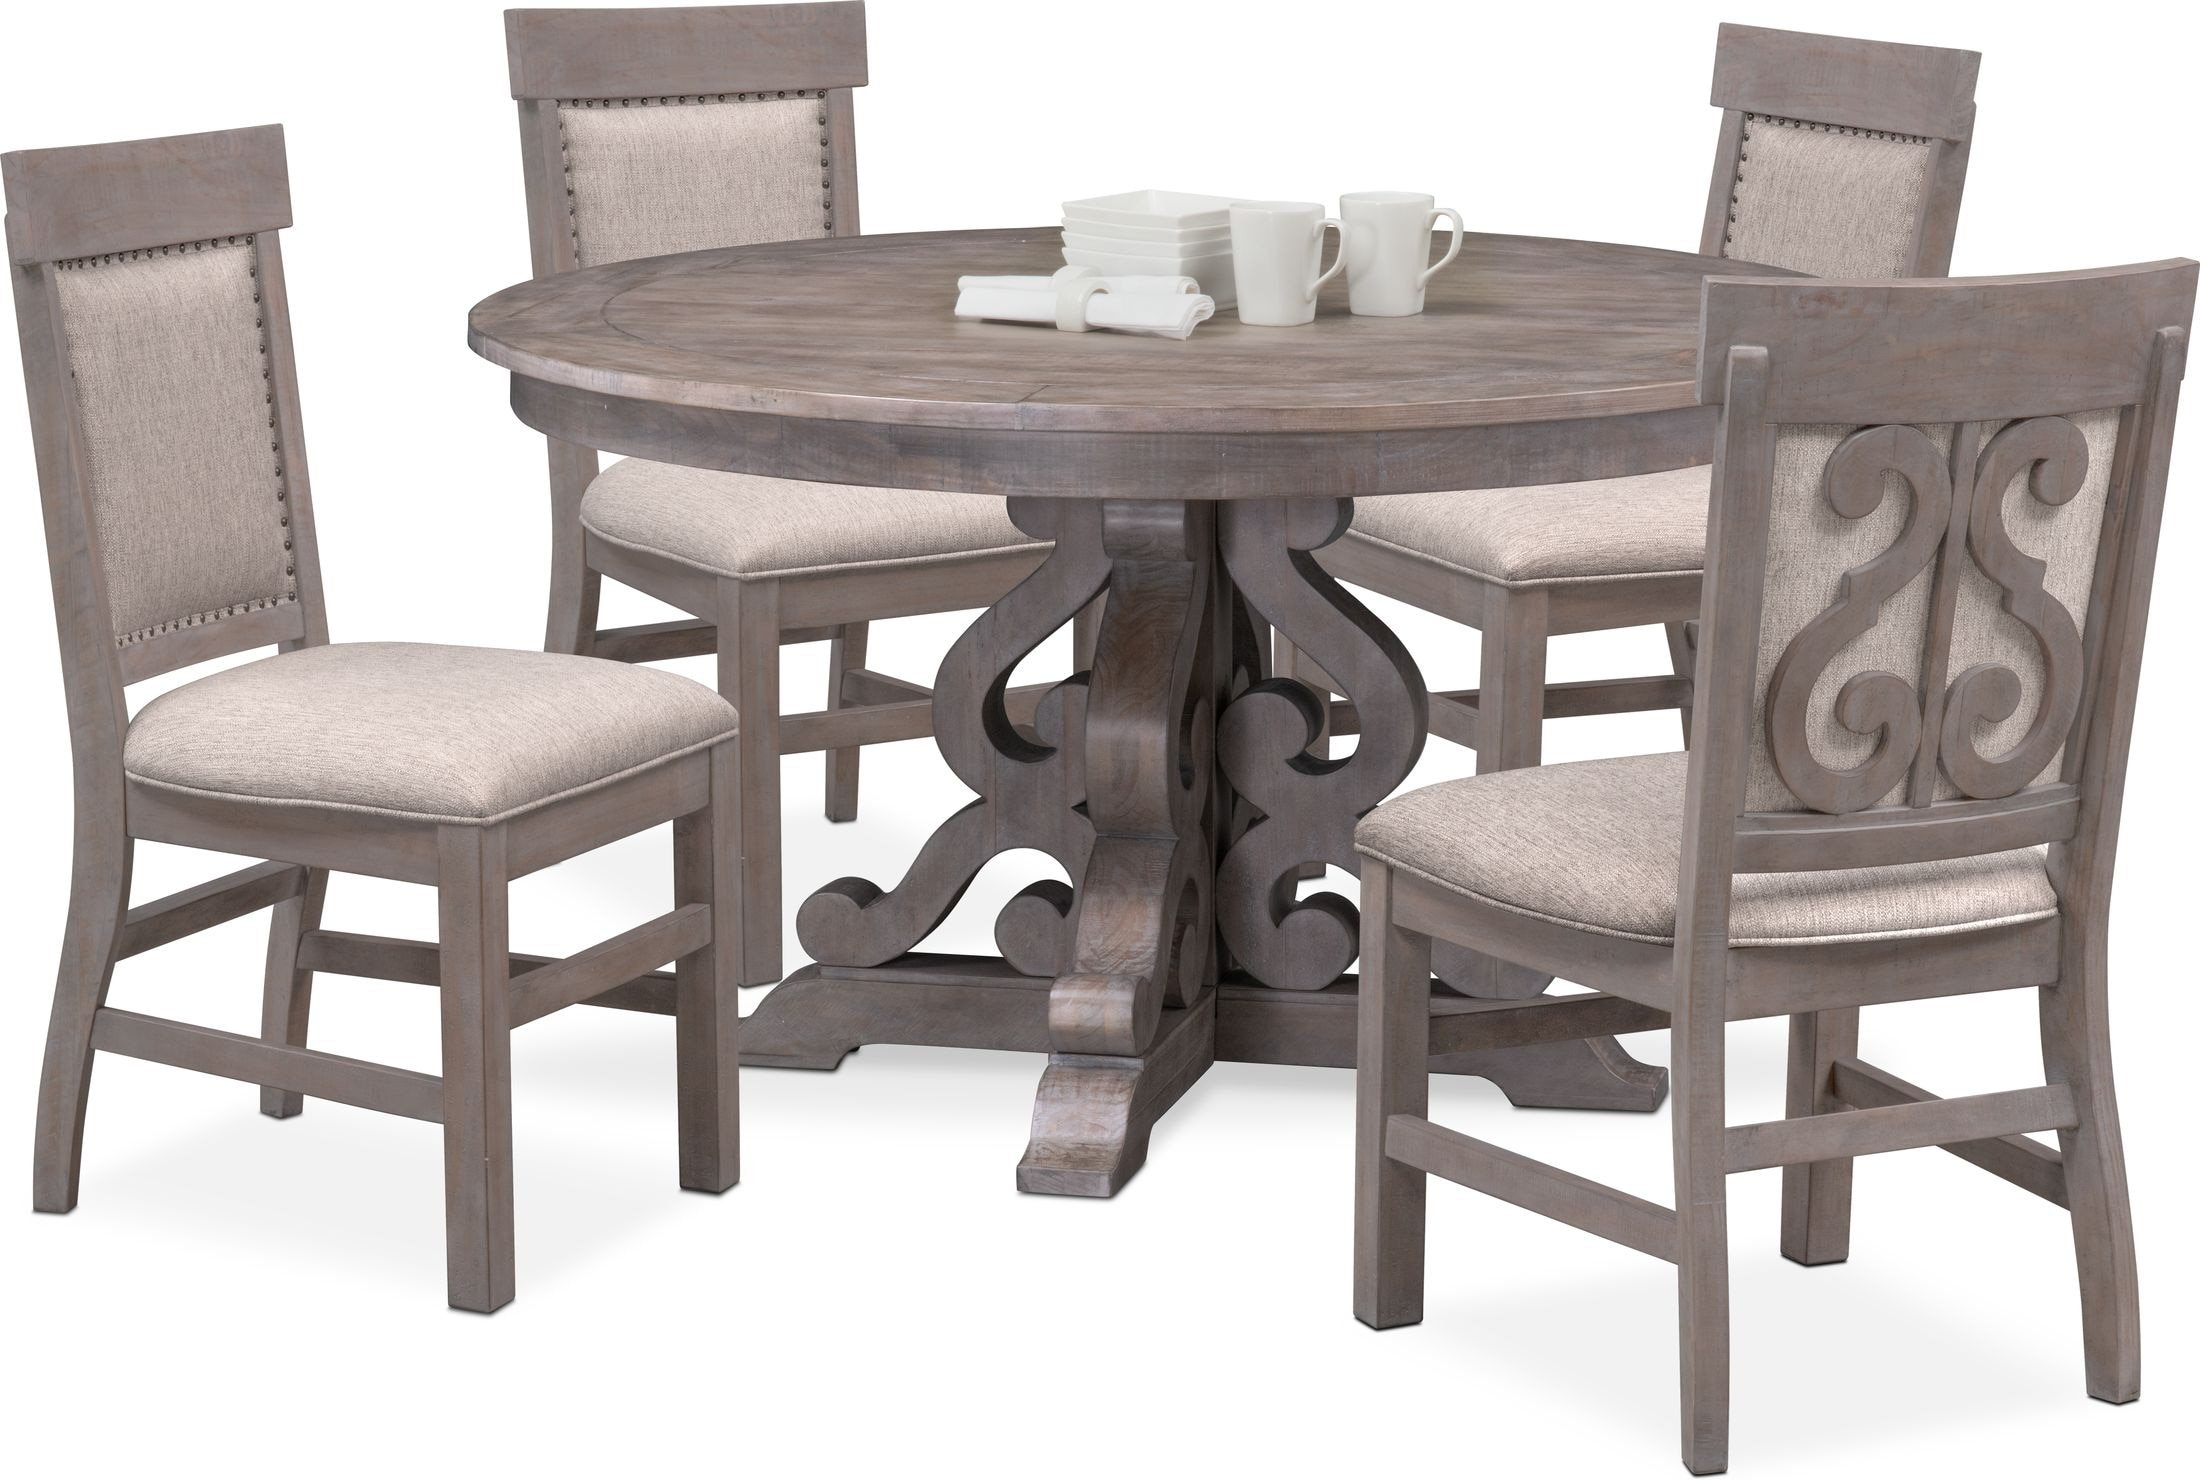 Charthouse Round Dining Table And 4 Upholstered Side Chairs Value City Furniture